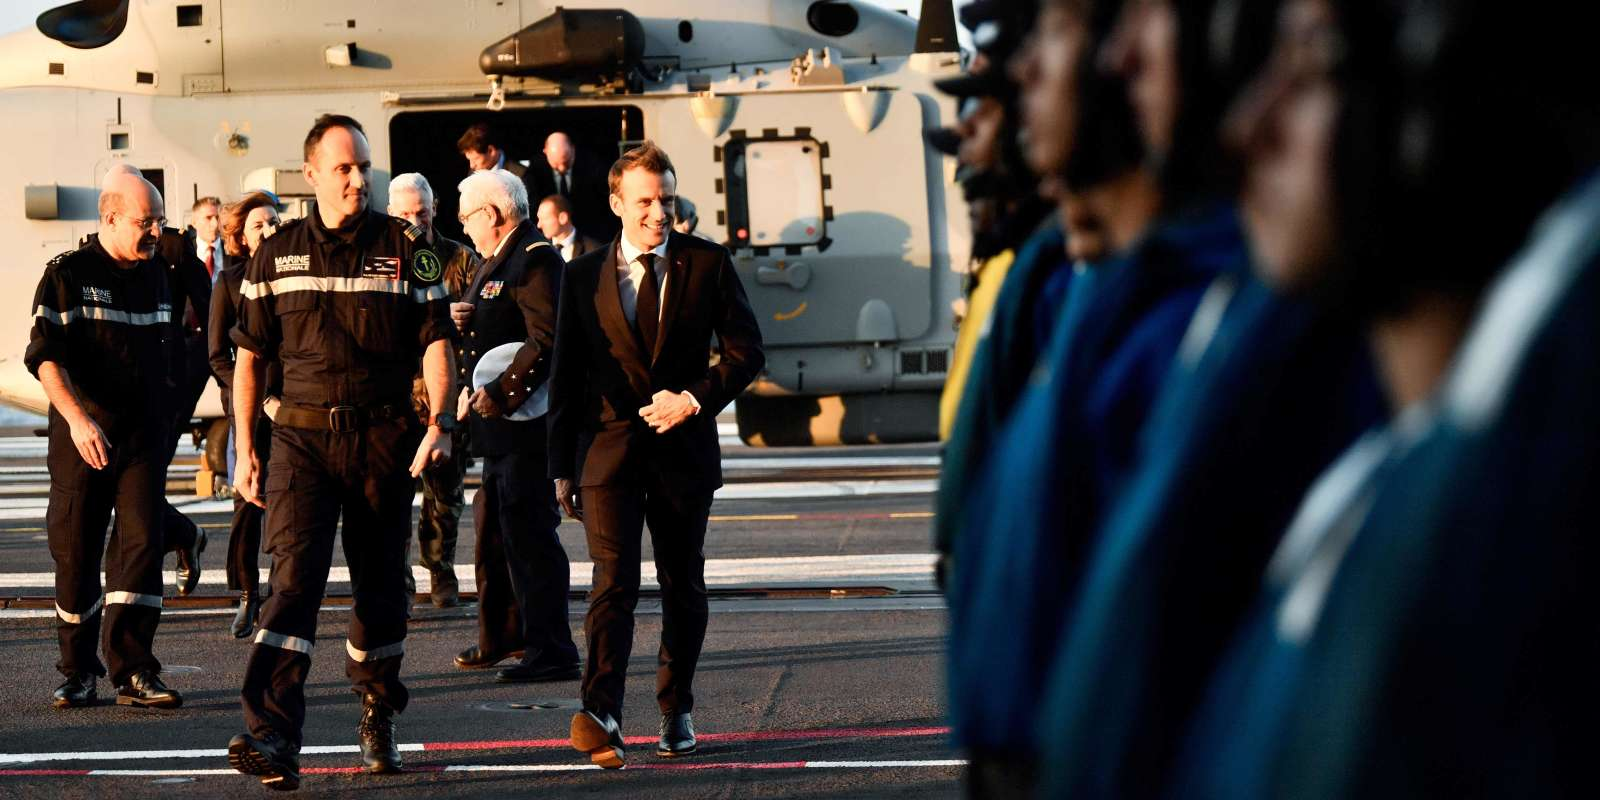 French President Emmanuel Macron arrives onboard the upgraded Charles de Gaulle aircraft carrier in Toulon, southern France, on November 14, 2018. The French president will spend one night aboard the aircraft carrier. / AFP / POOL / CHRISTOPHE SIMON